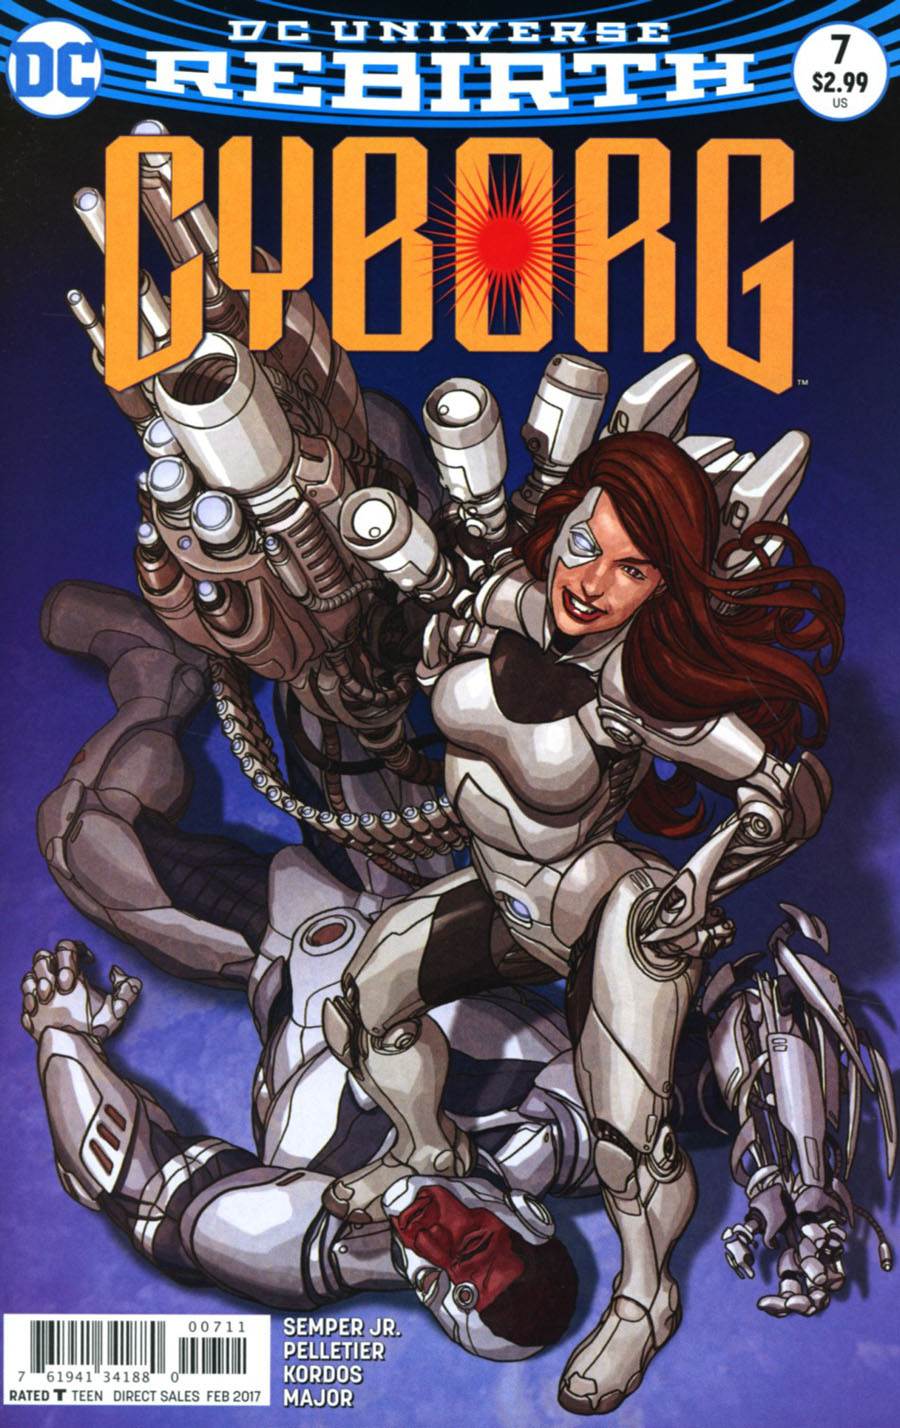 Cyborg Vol 2 #7 Cover A Regular Mike Choi Cover